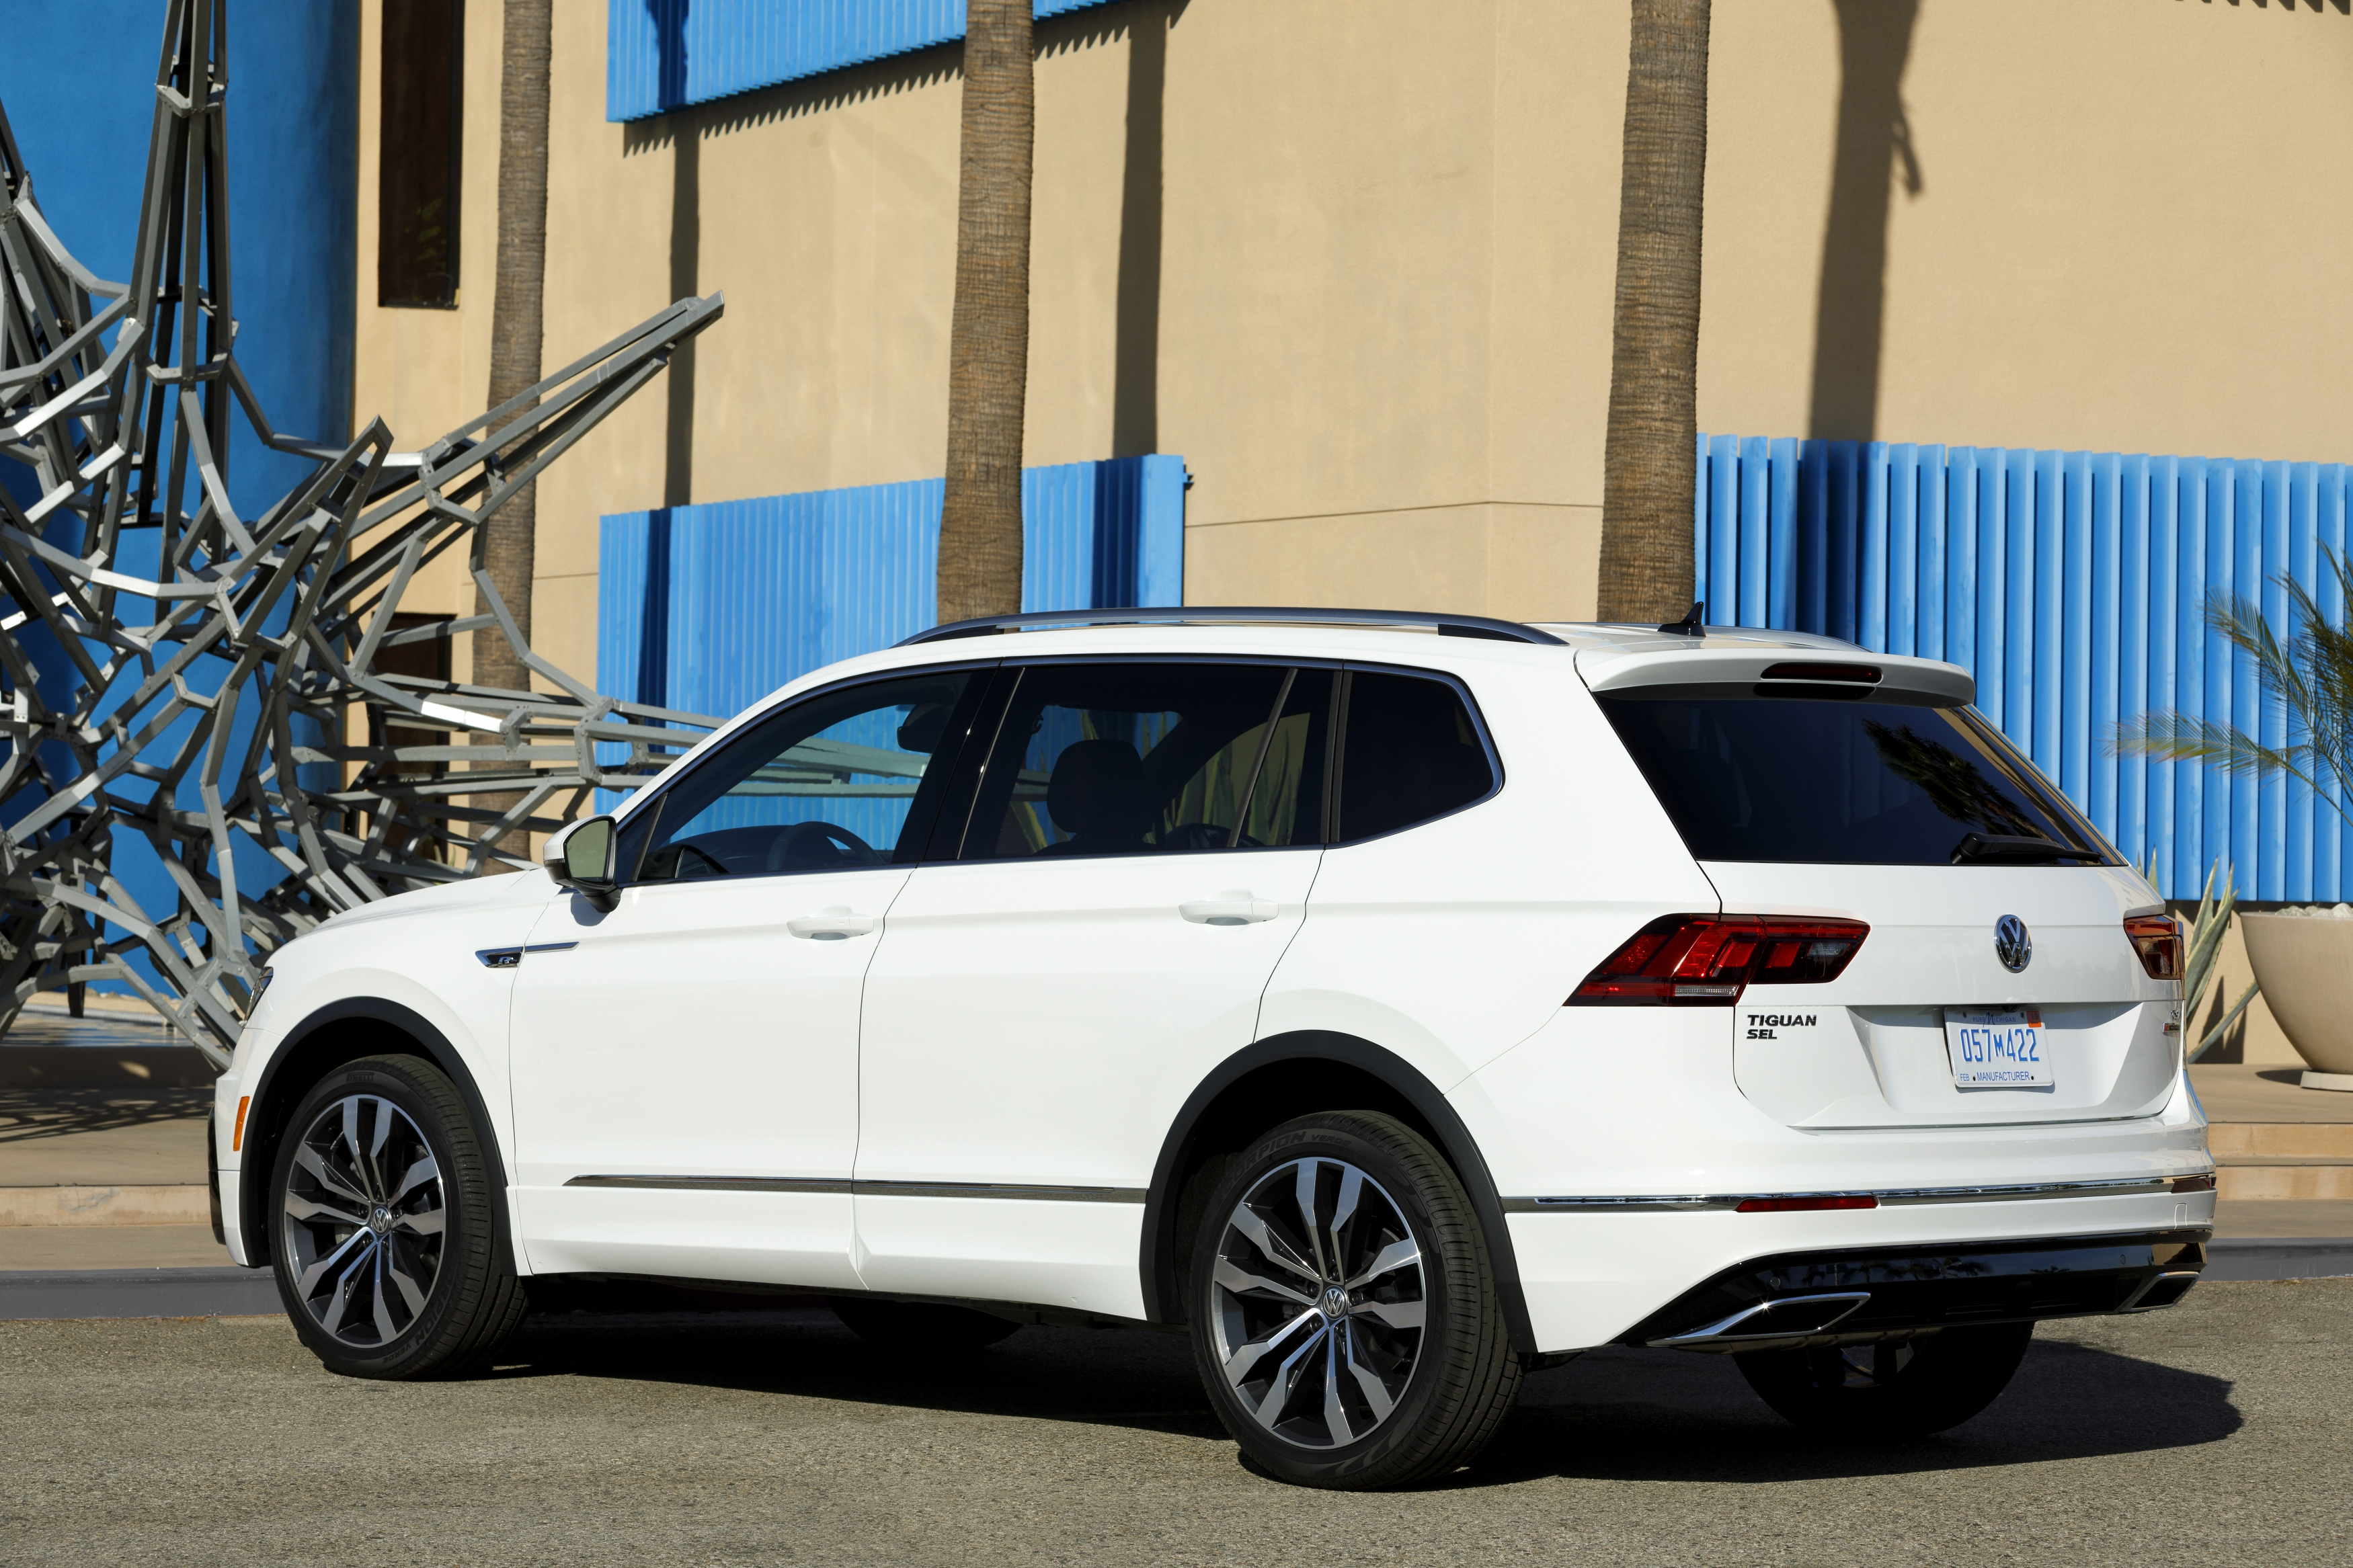 2018 volkswagen tiguan r line package release date and information. Black Bedroom Furniture Sets. Home Design Ideas